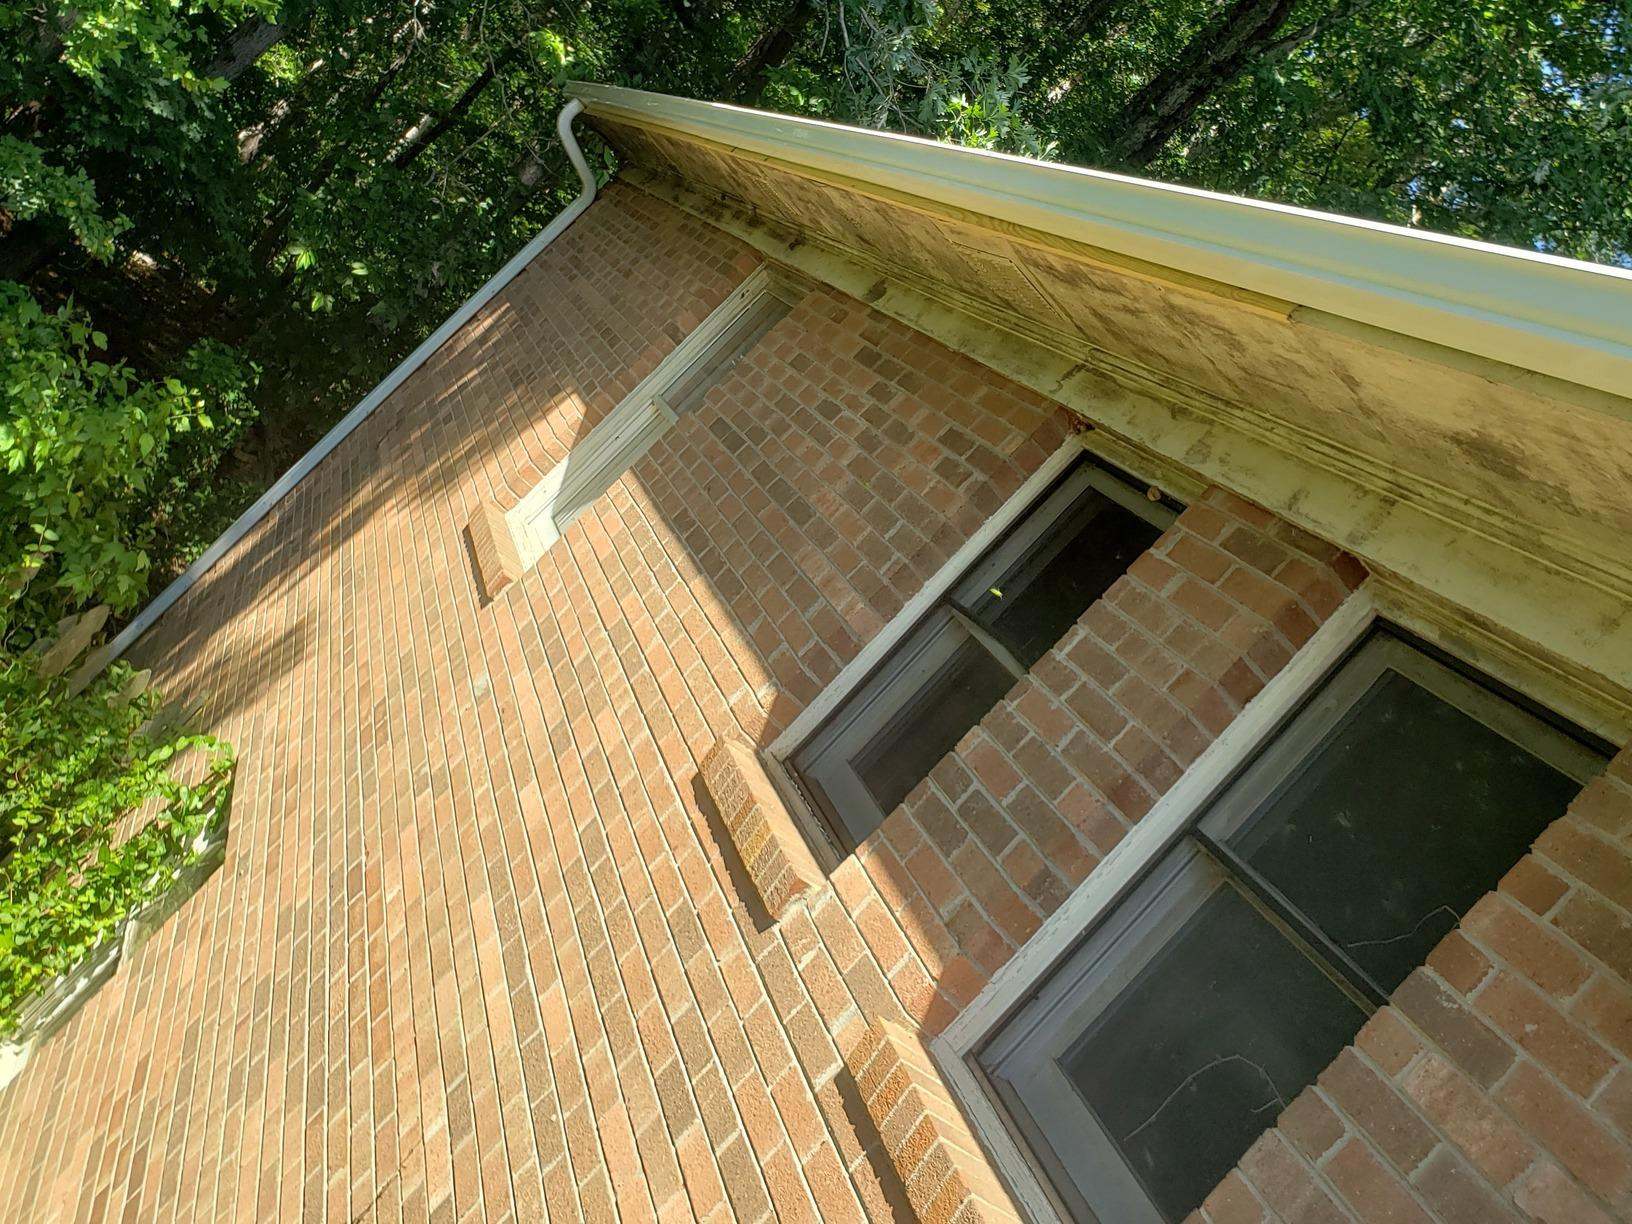 Gutter and Fascia Replacement in Walnut Cove, NC - After Photo